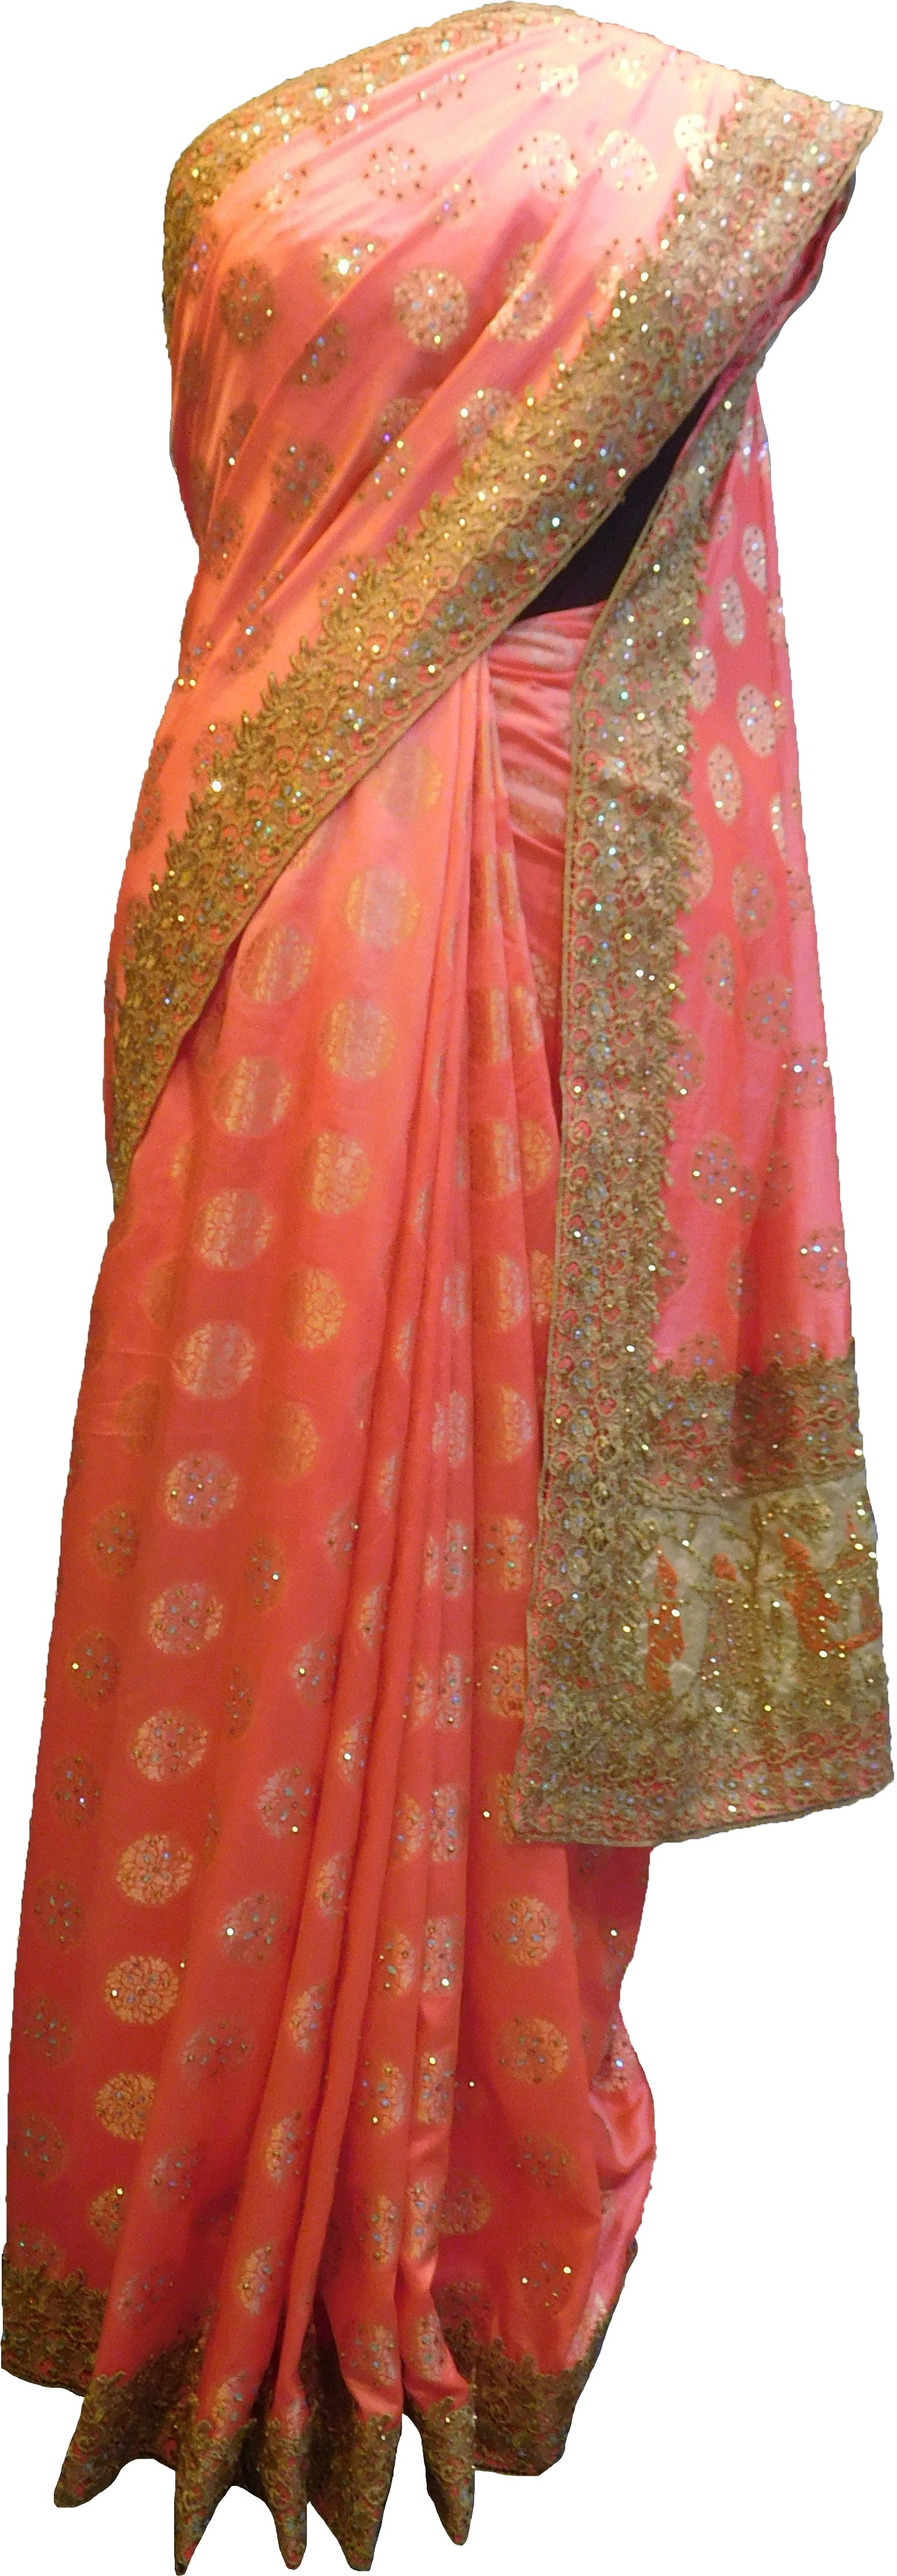 SMSAREE Pink Designer Wedding Partywear Silk Stone Thread & Zari Hand Embroidery Work Bridal Saree Sari With Blouse Piece F402